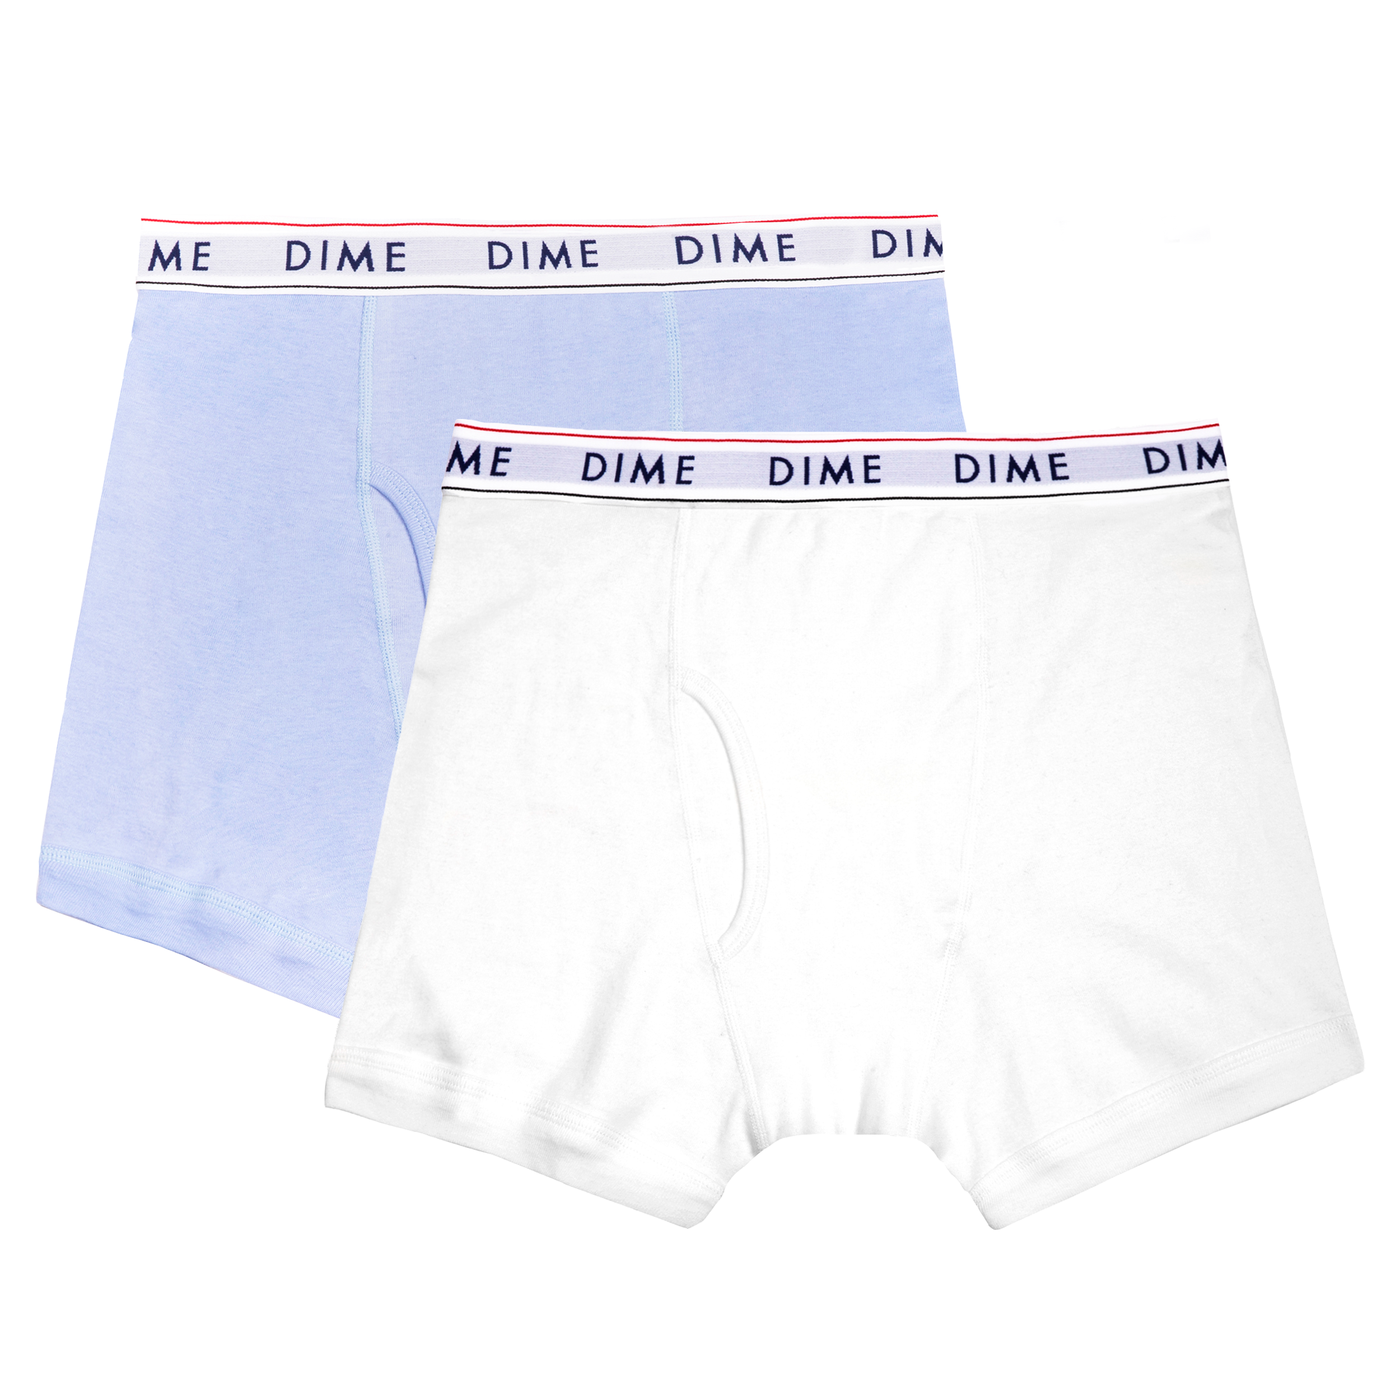 Dime Boxers 2-Pack Product Photo #1